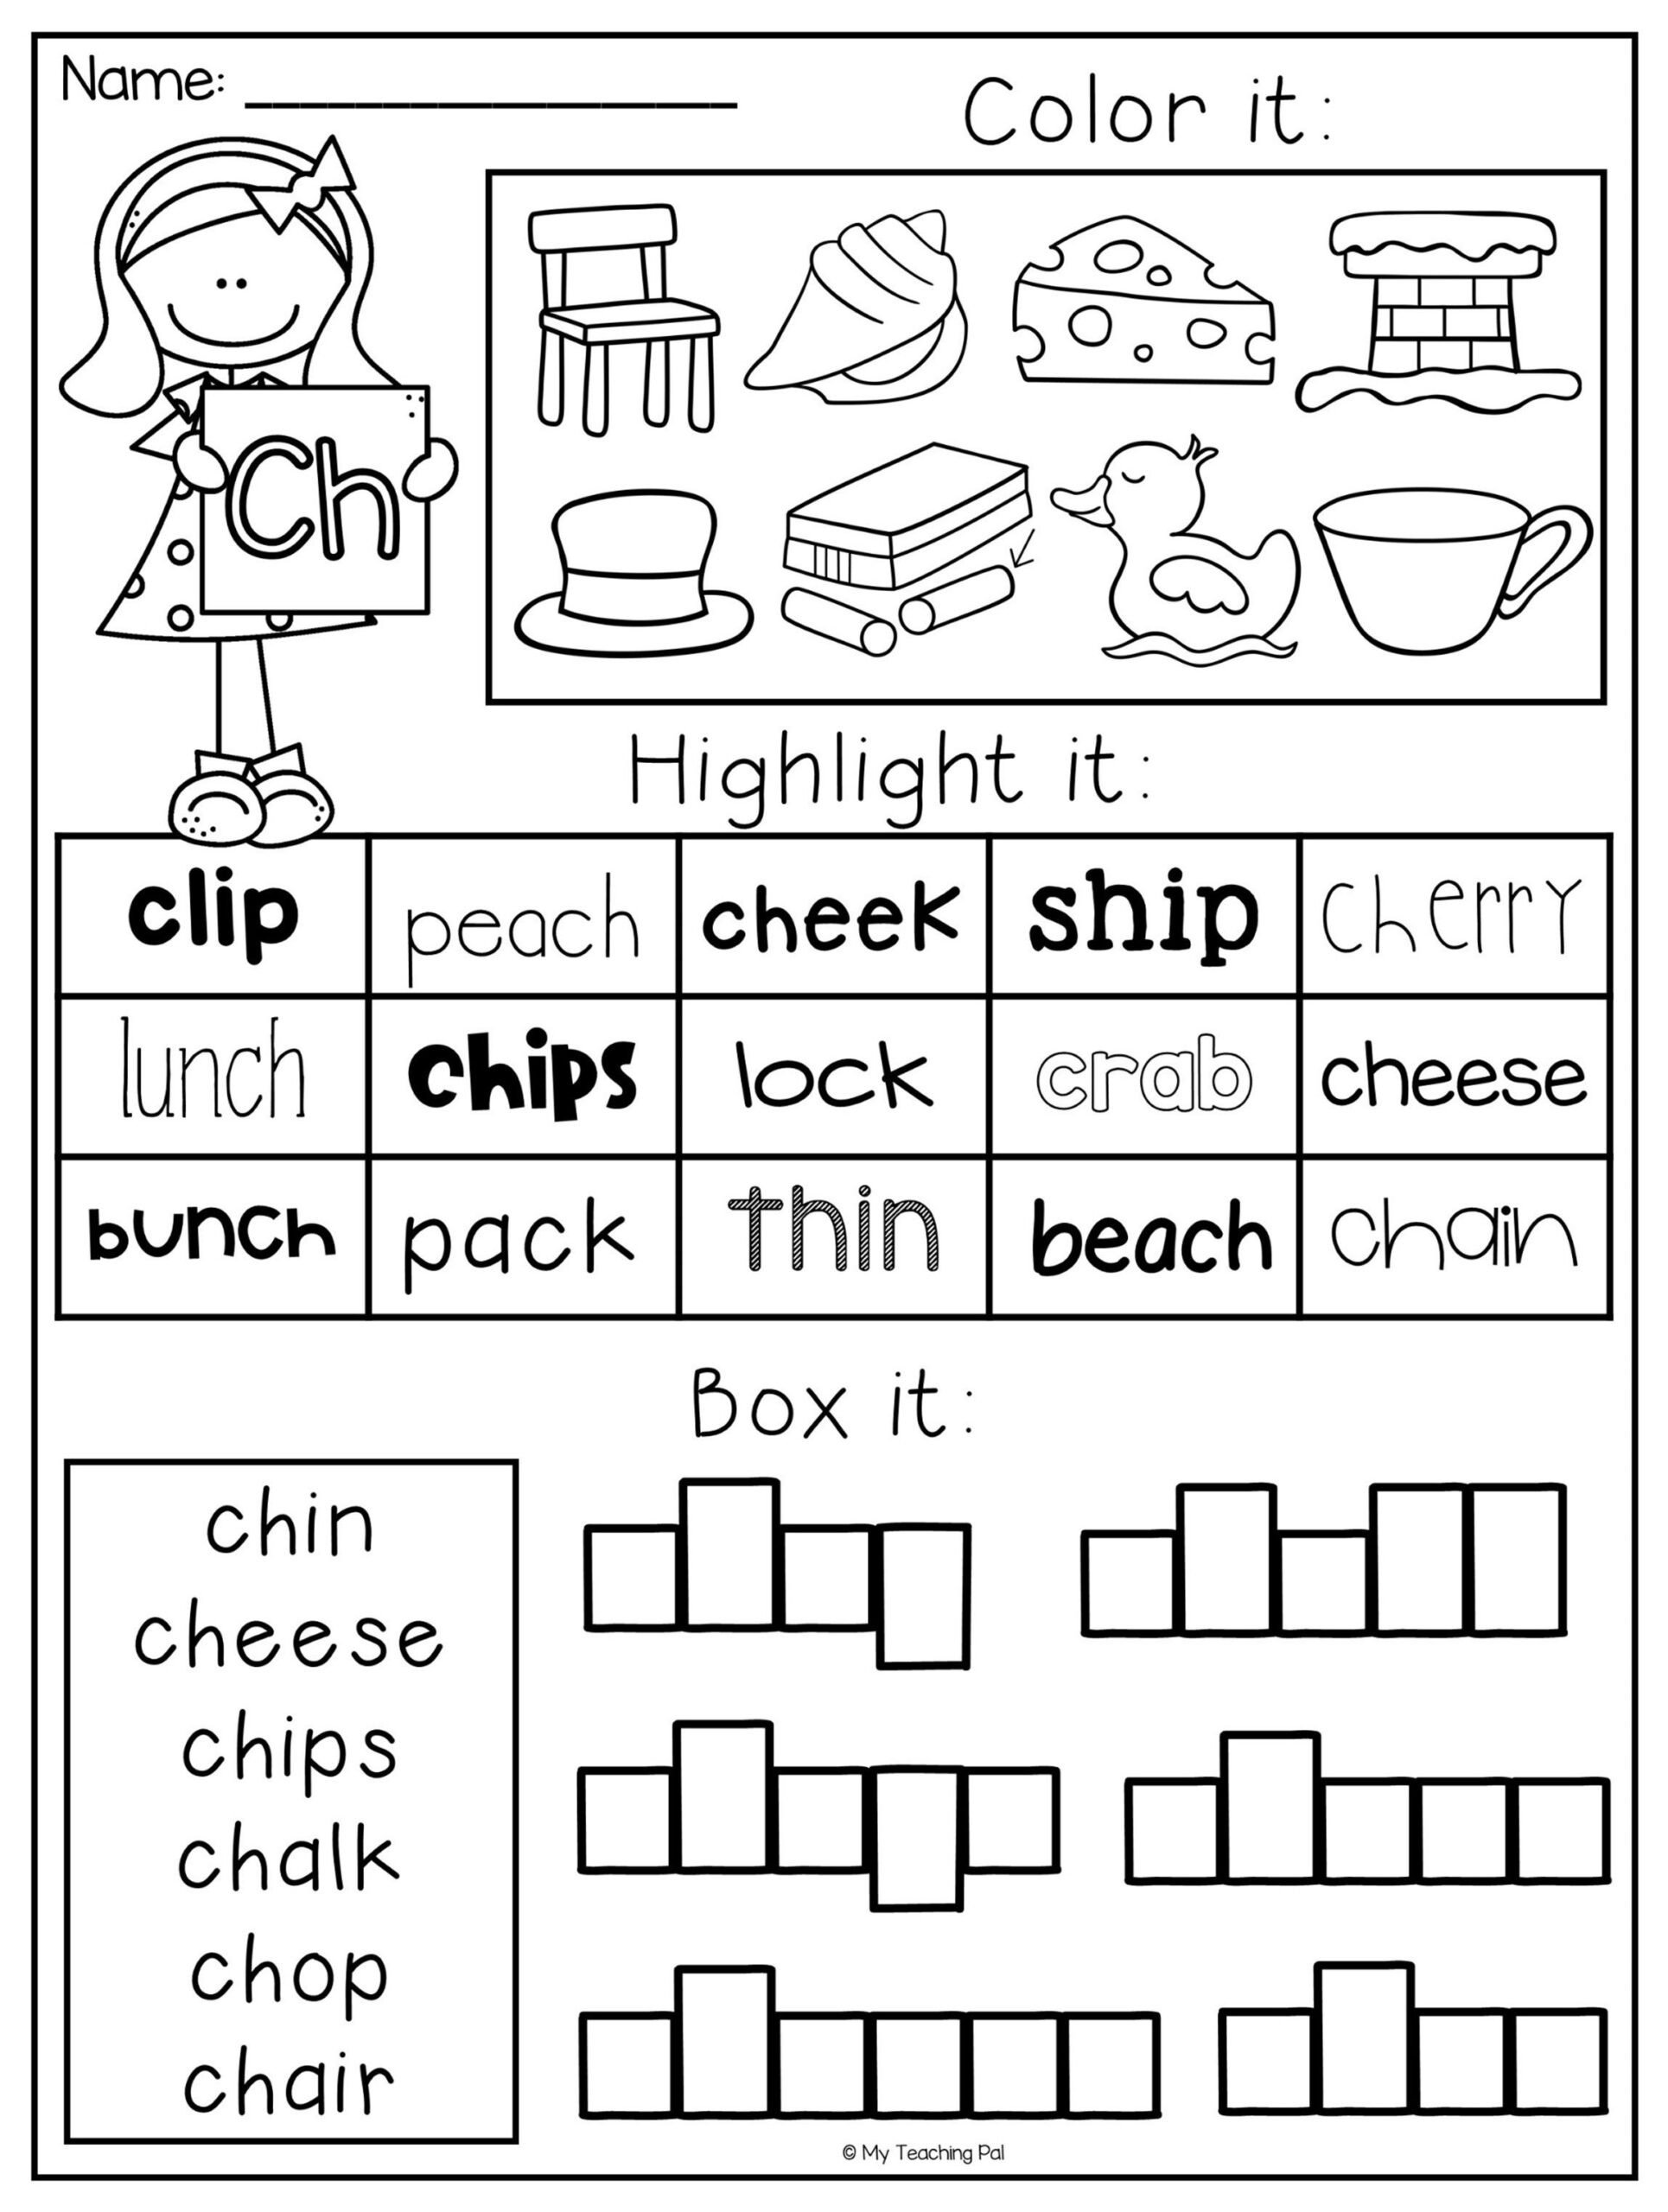 Ch Worksheets for Kindergarten Digraph Worksheet Packet Ch Th Wh Ph Digraphs Worksheets